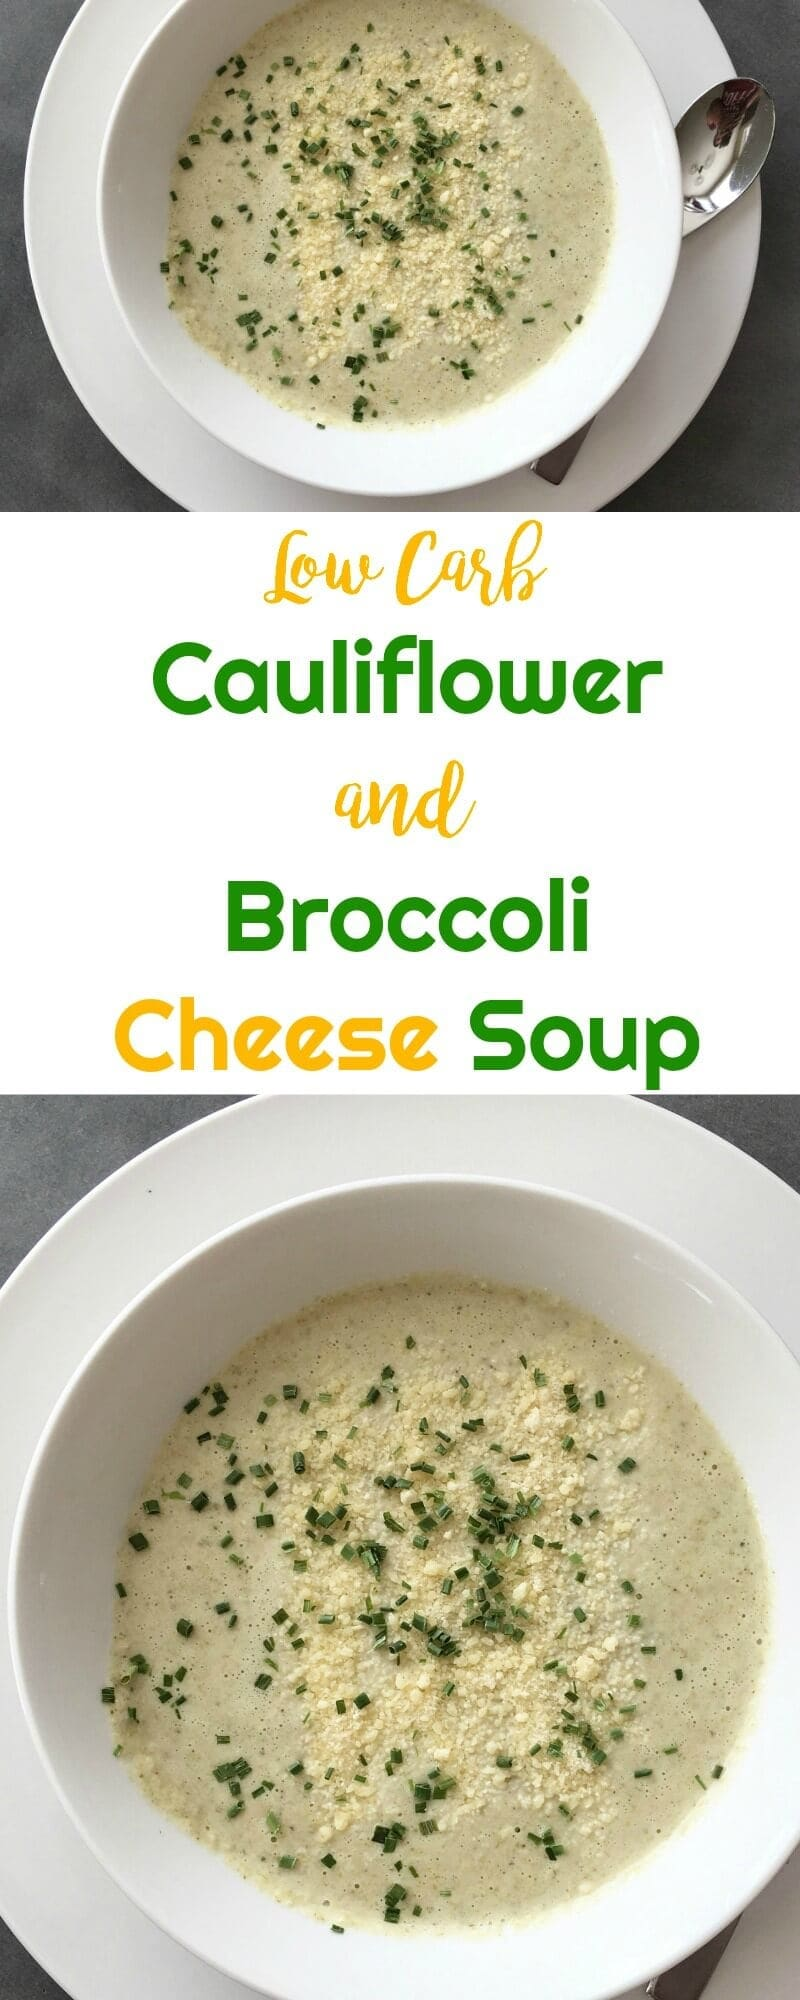 Low Carb Cauliflower and Broccoli Cheese Soup | Peace Love and Low Carb #lowcarbsoup #cauliflowerandbroccolicheesesoup #lowcarb #keto #lowcarbrecipe